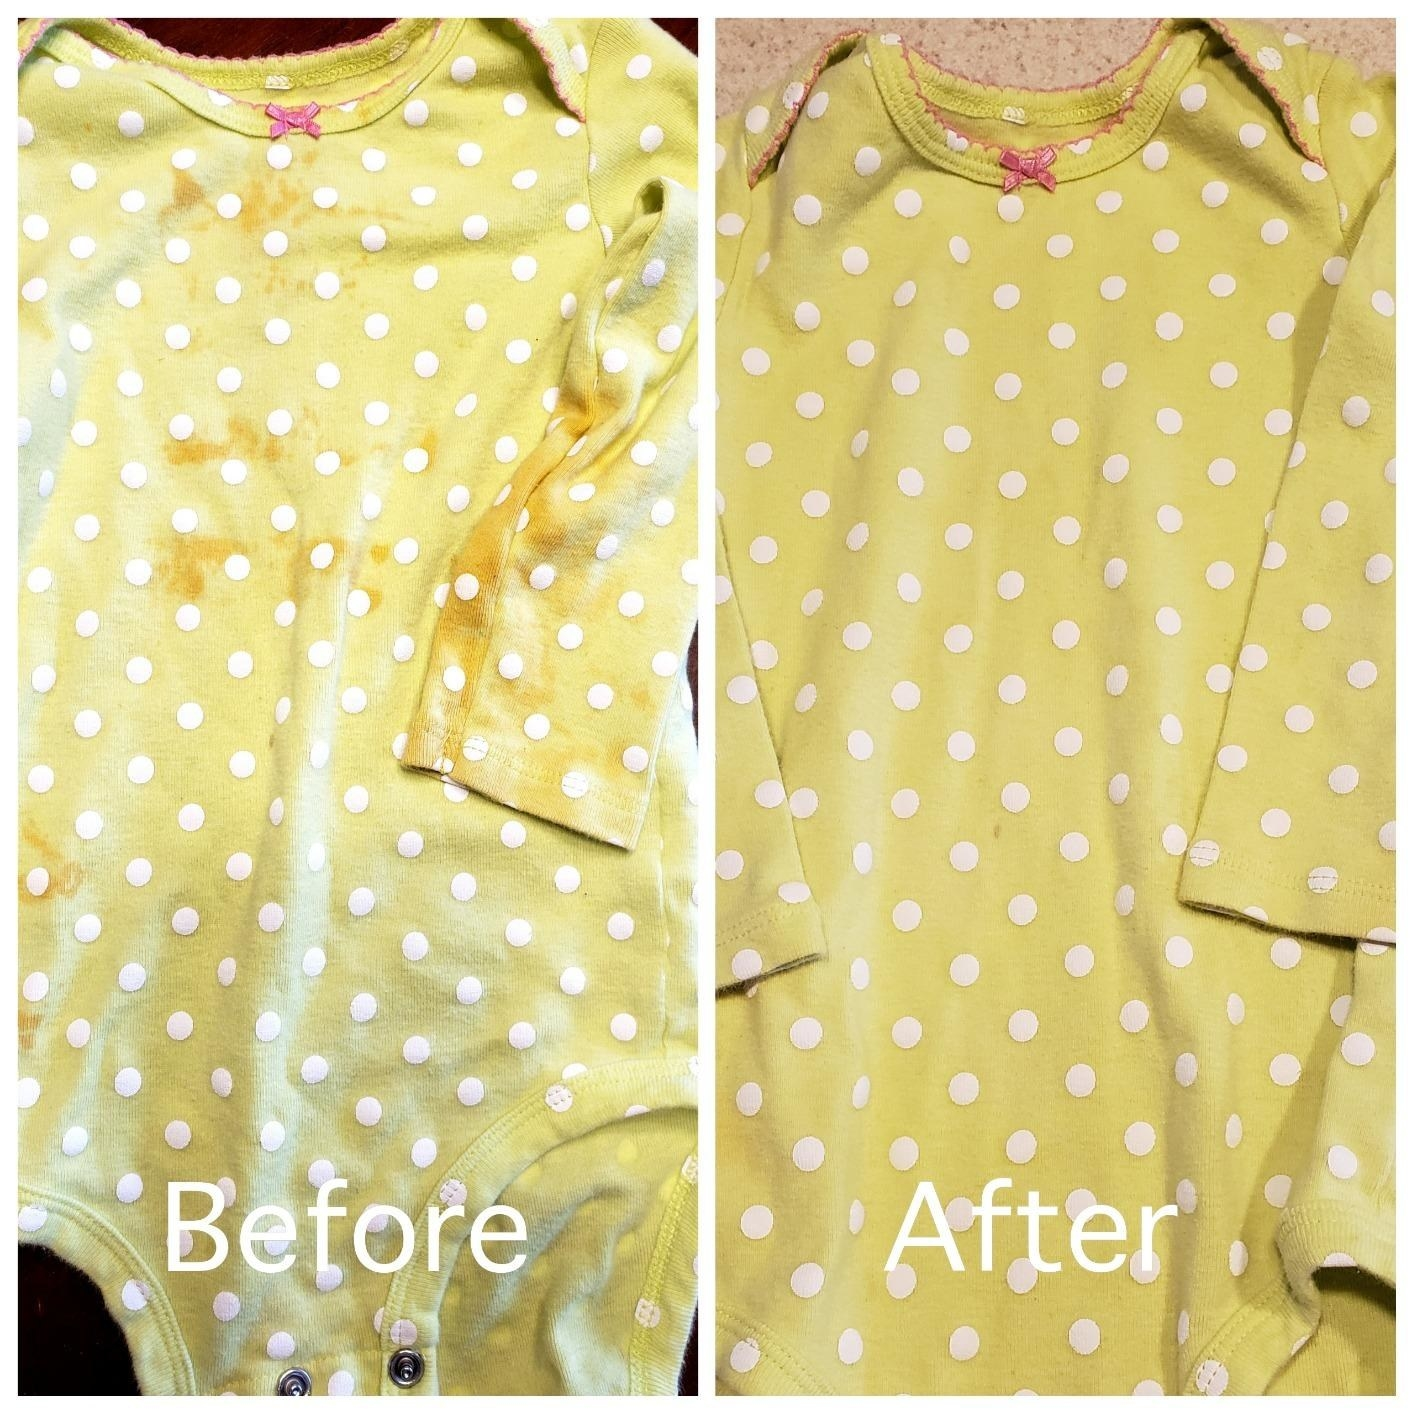 """on the left, a stained baby onesie and text reading """"before"""". On the right, the same onesie without stains and text reading """"after"""""""